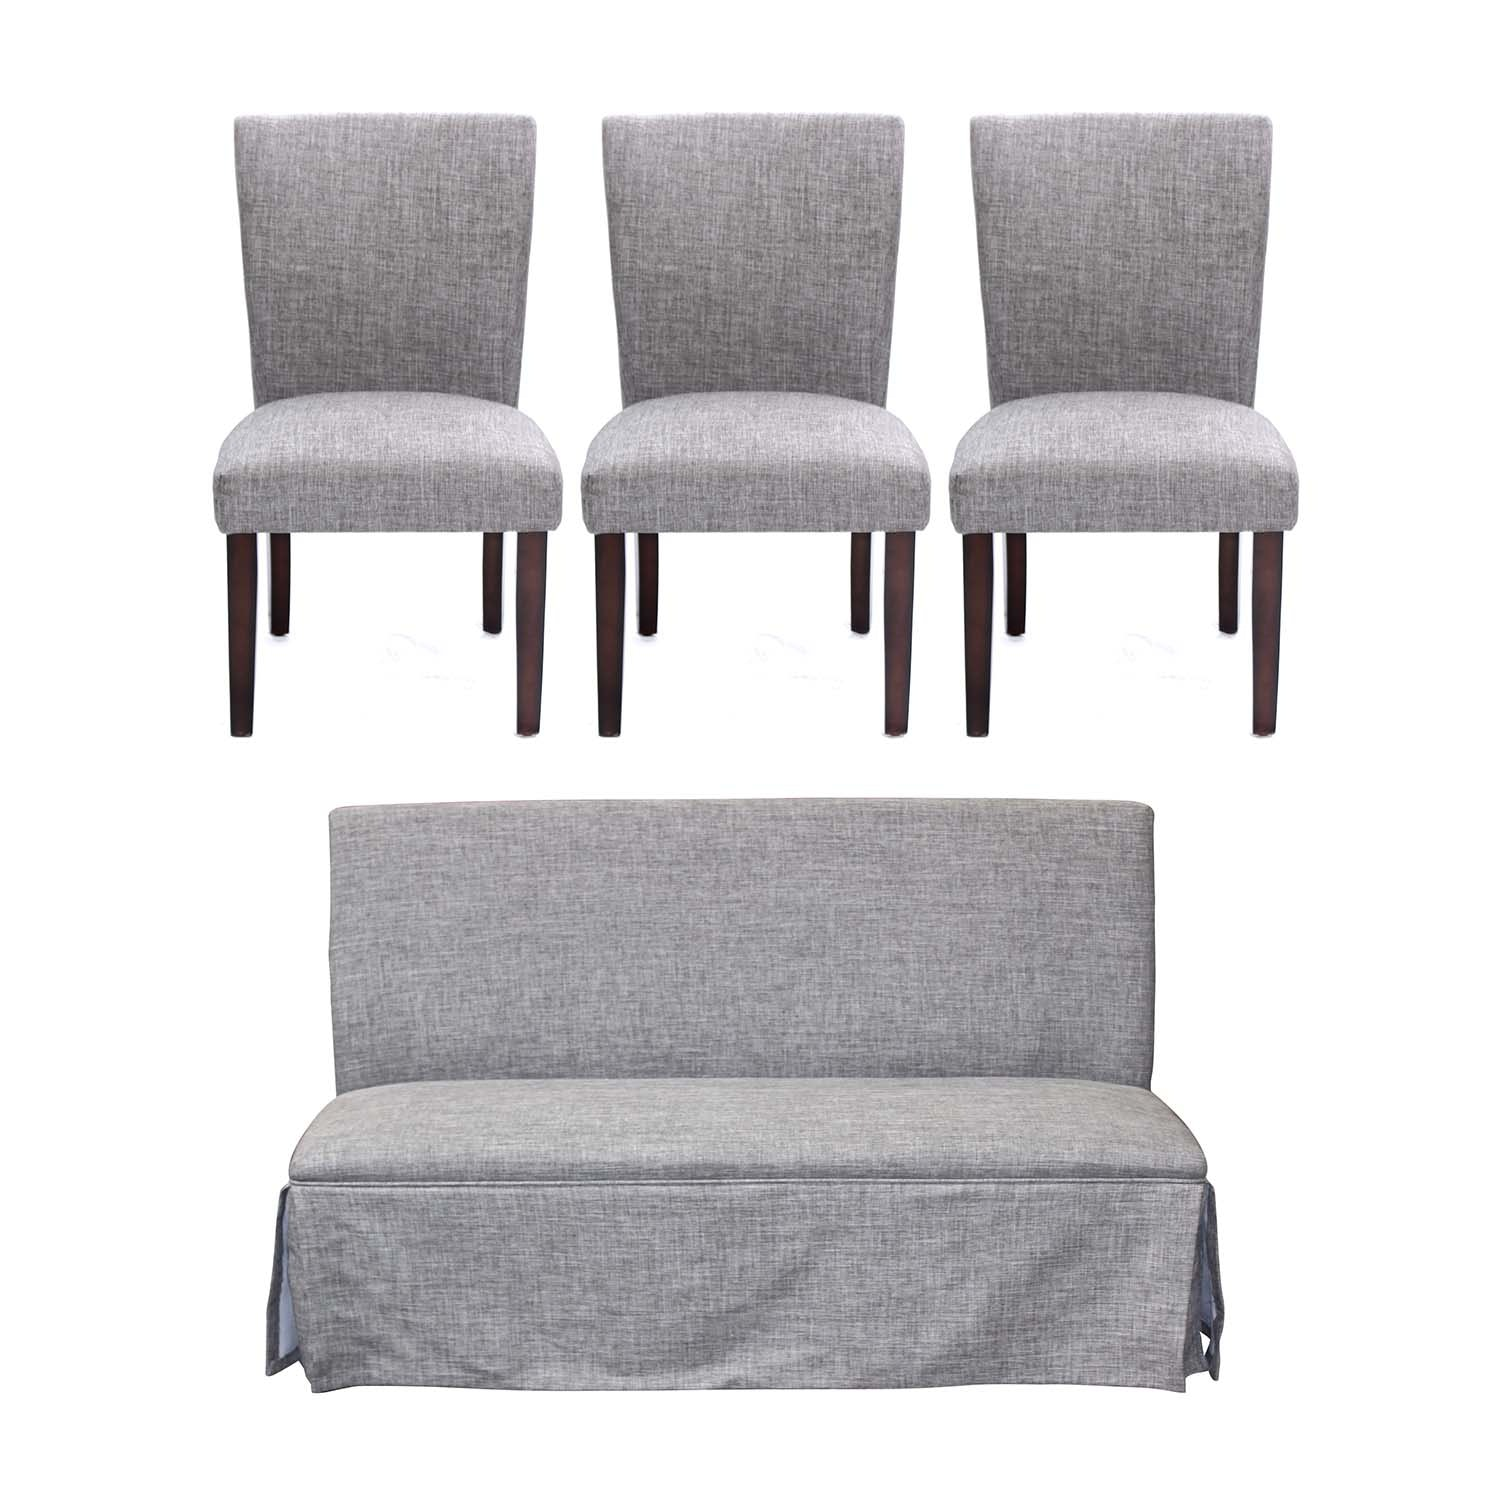 Gray Upholstered Dining Chairs and Bench, Contemporary